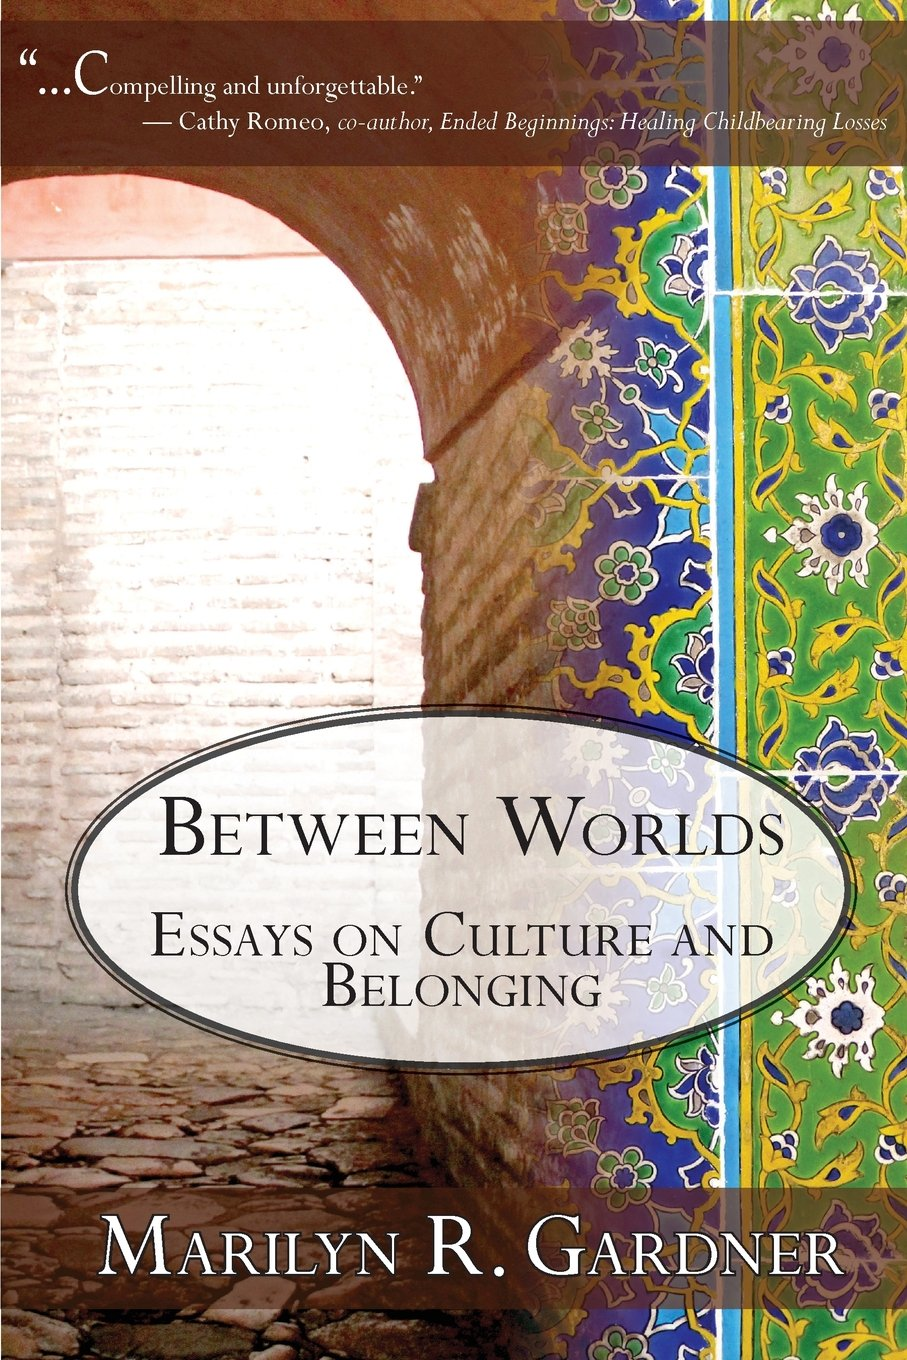 essays on culture essay about culture shock saveur communication as culture revised edition essays on media and society media